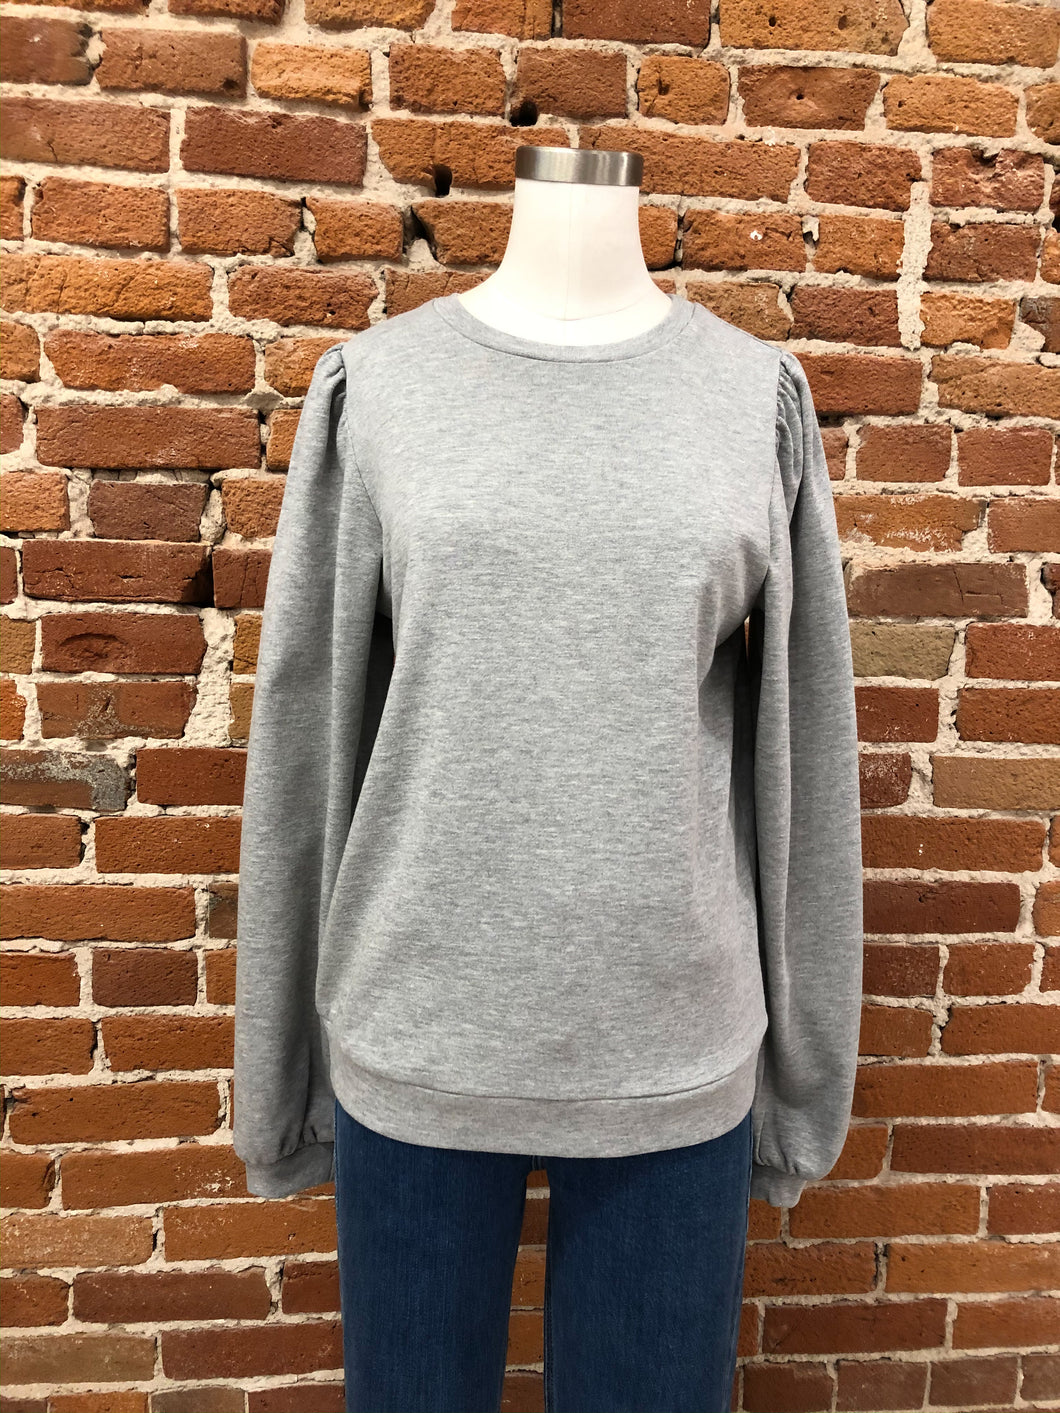 Linda Puff Sleeve Top in Heather Grey